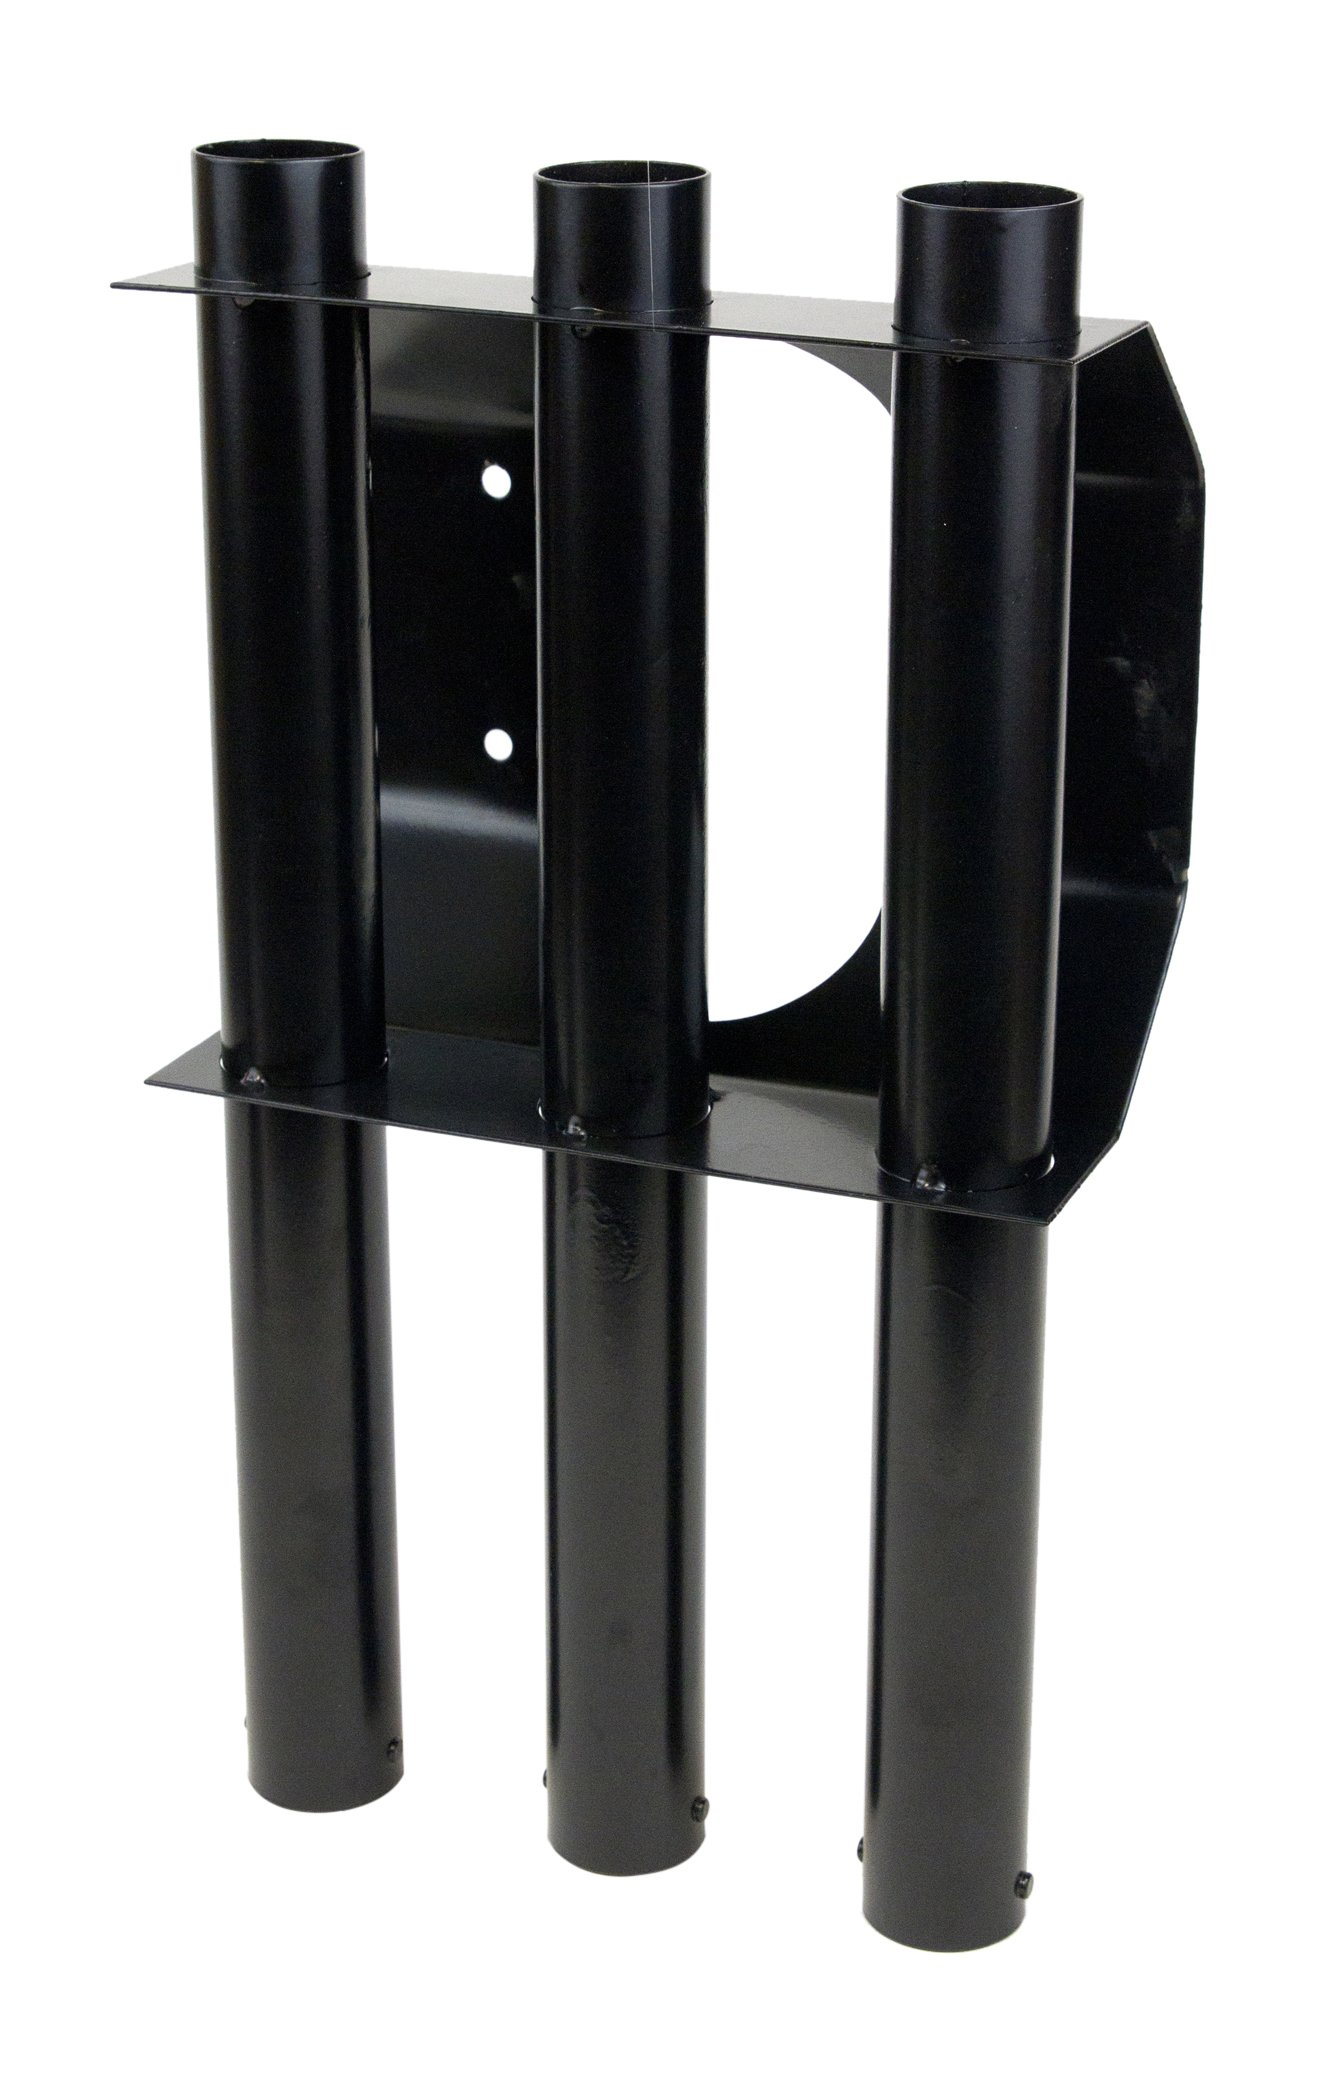 Polar Trailer Tow Behind Cart Tool Rack and Carts Easy to Install Durable Build Useful Accessory, Black by Polar Trailer